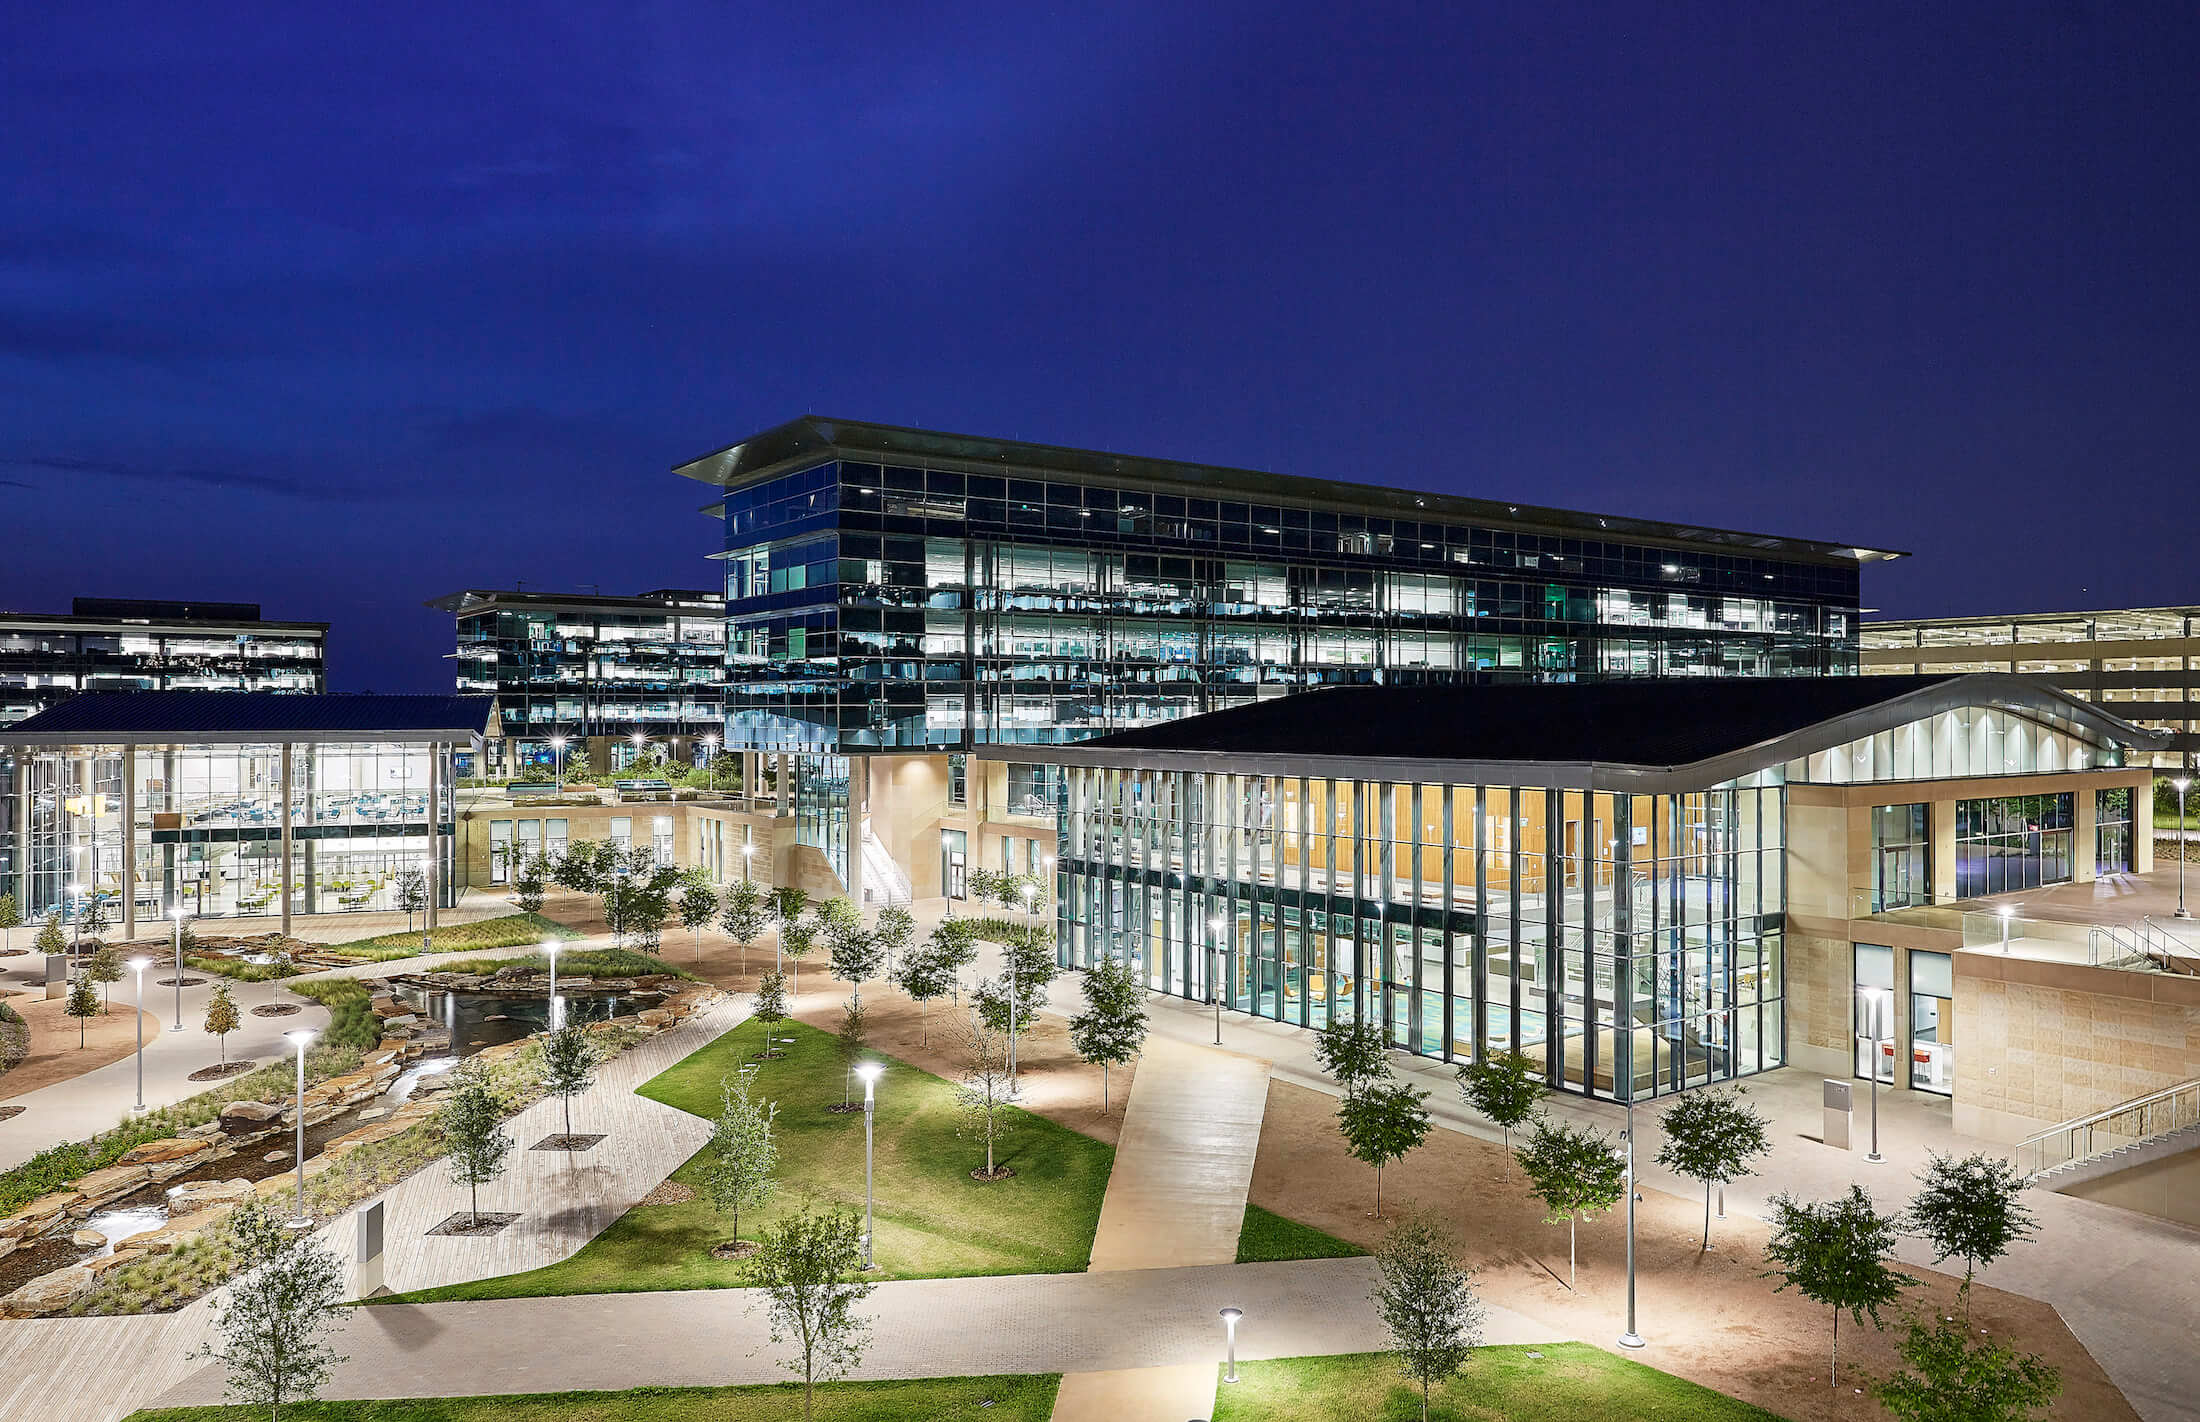 Toyota Headquarters Plano Texas >> Toyota North American Headquarters